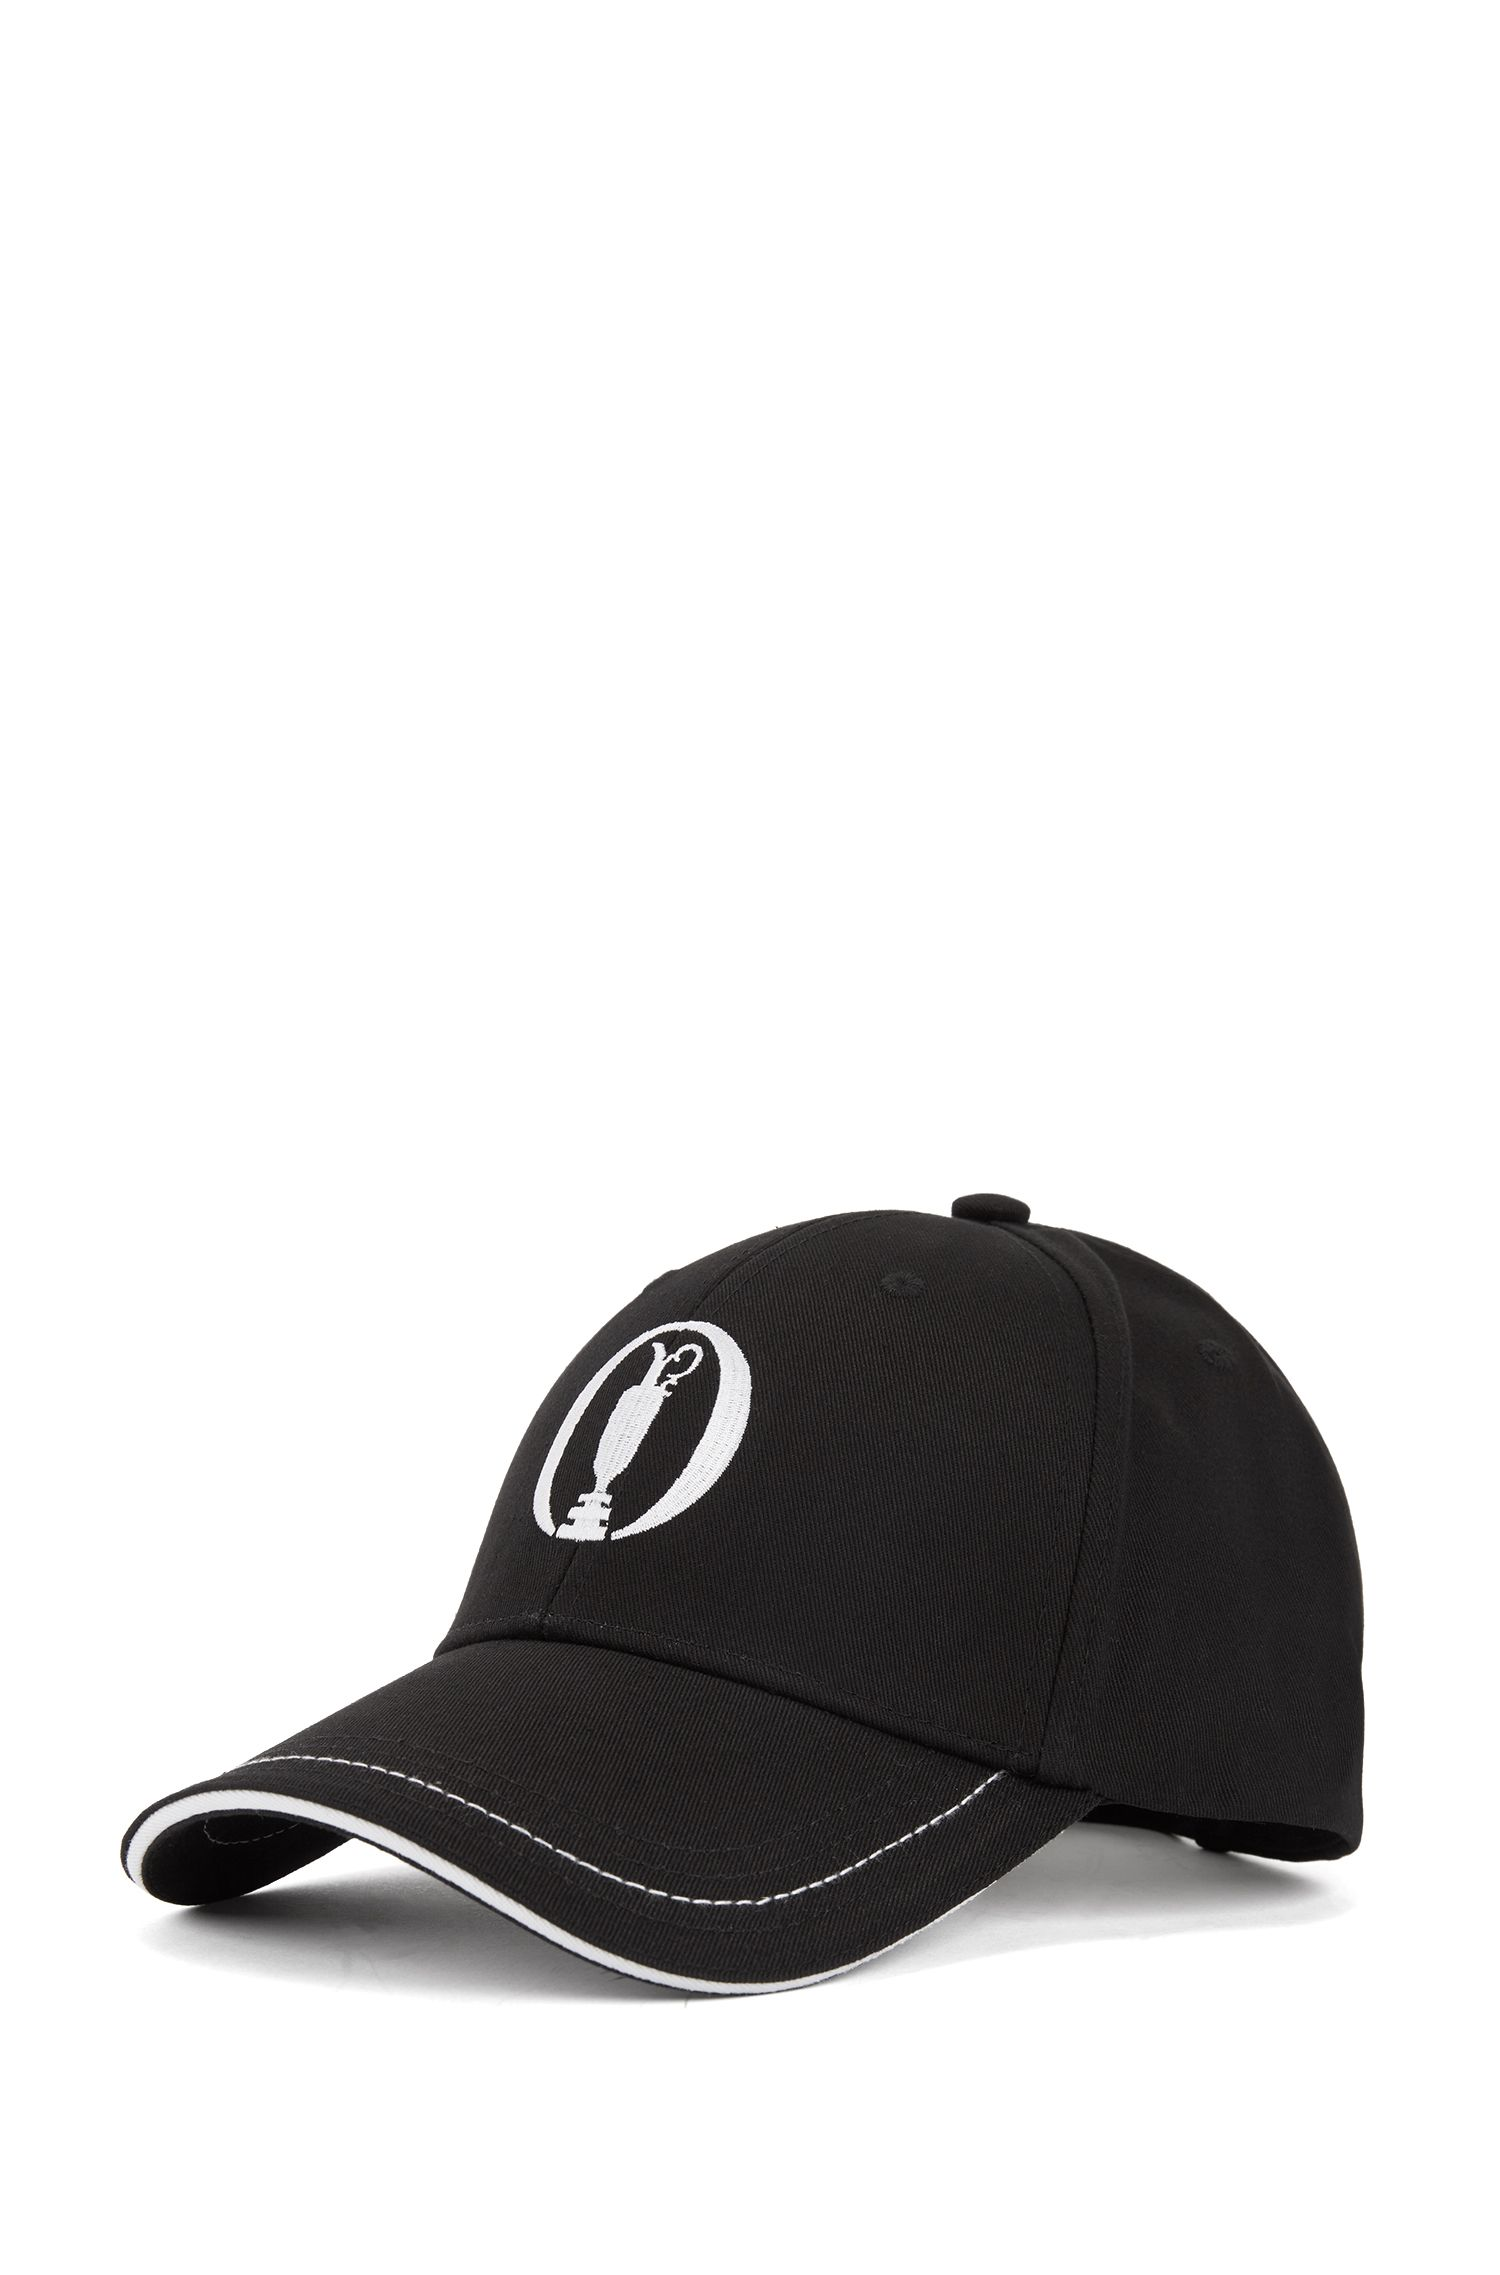 Casquette en twill de coton The Open Exclusive, Noir